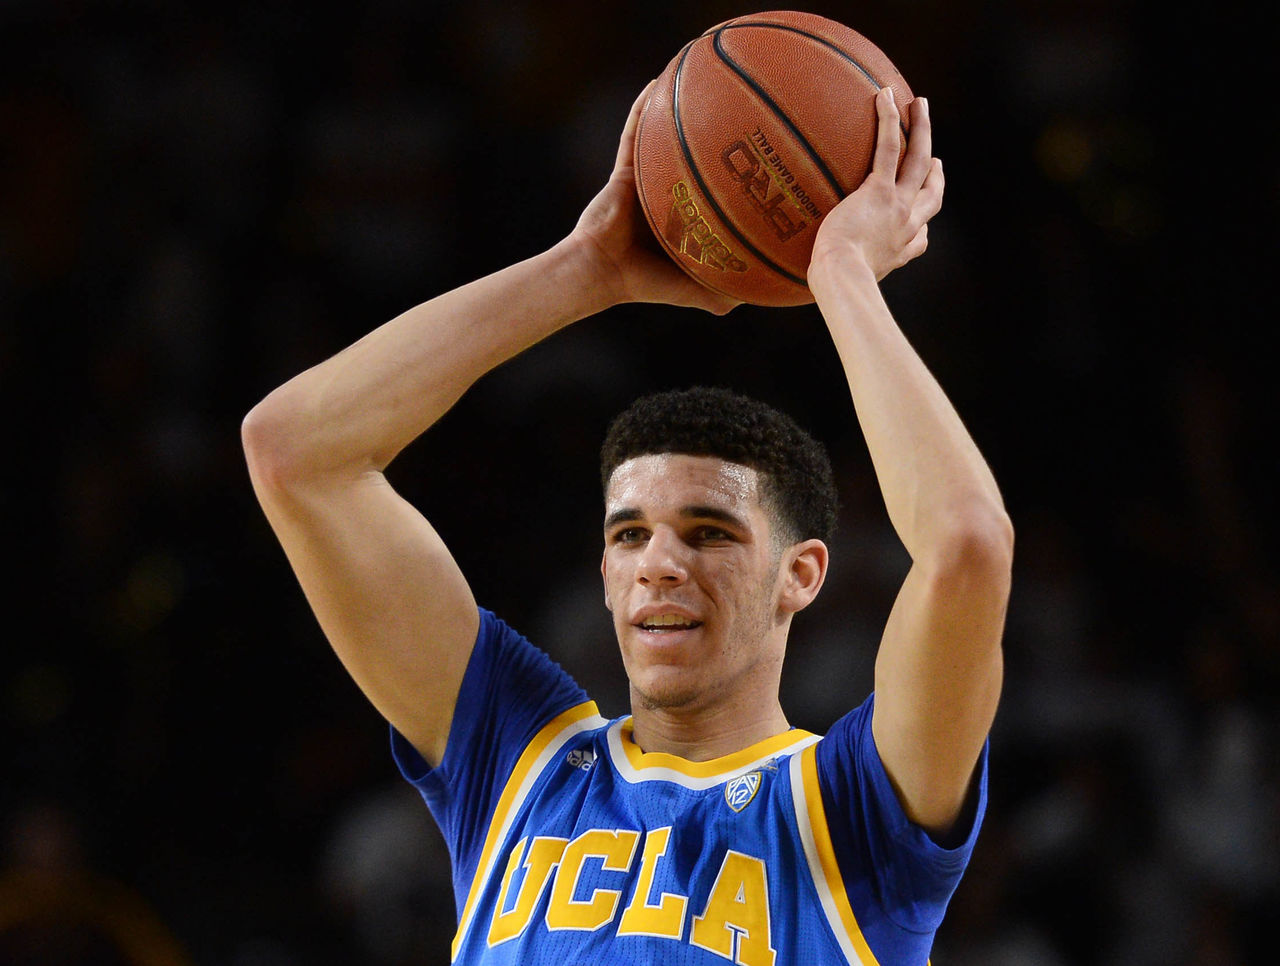 Cropped 2017 02 24t031039z 51378748 nocid rtrmadp 3 ncaa basketball ucla at arizona state